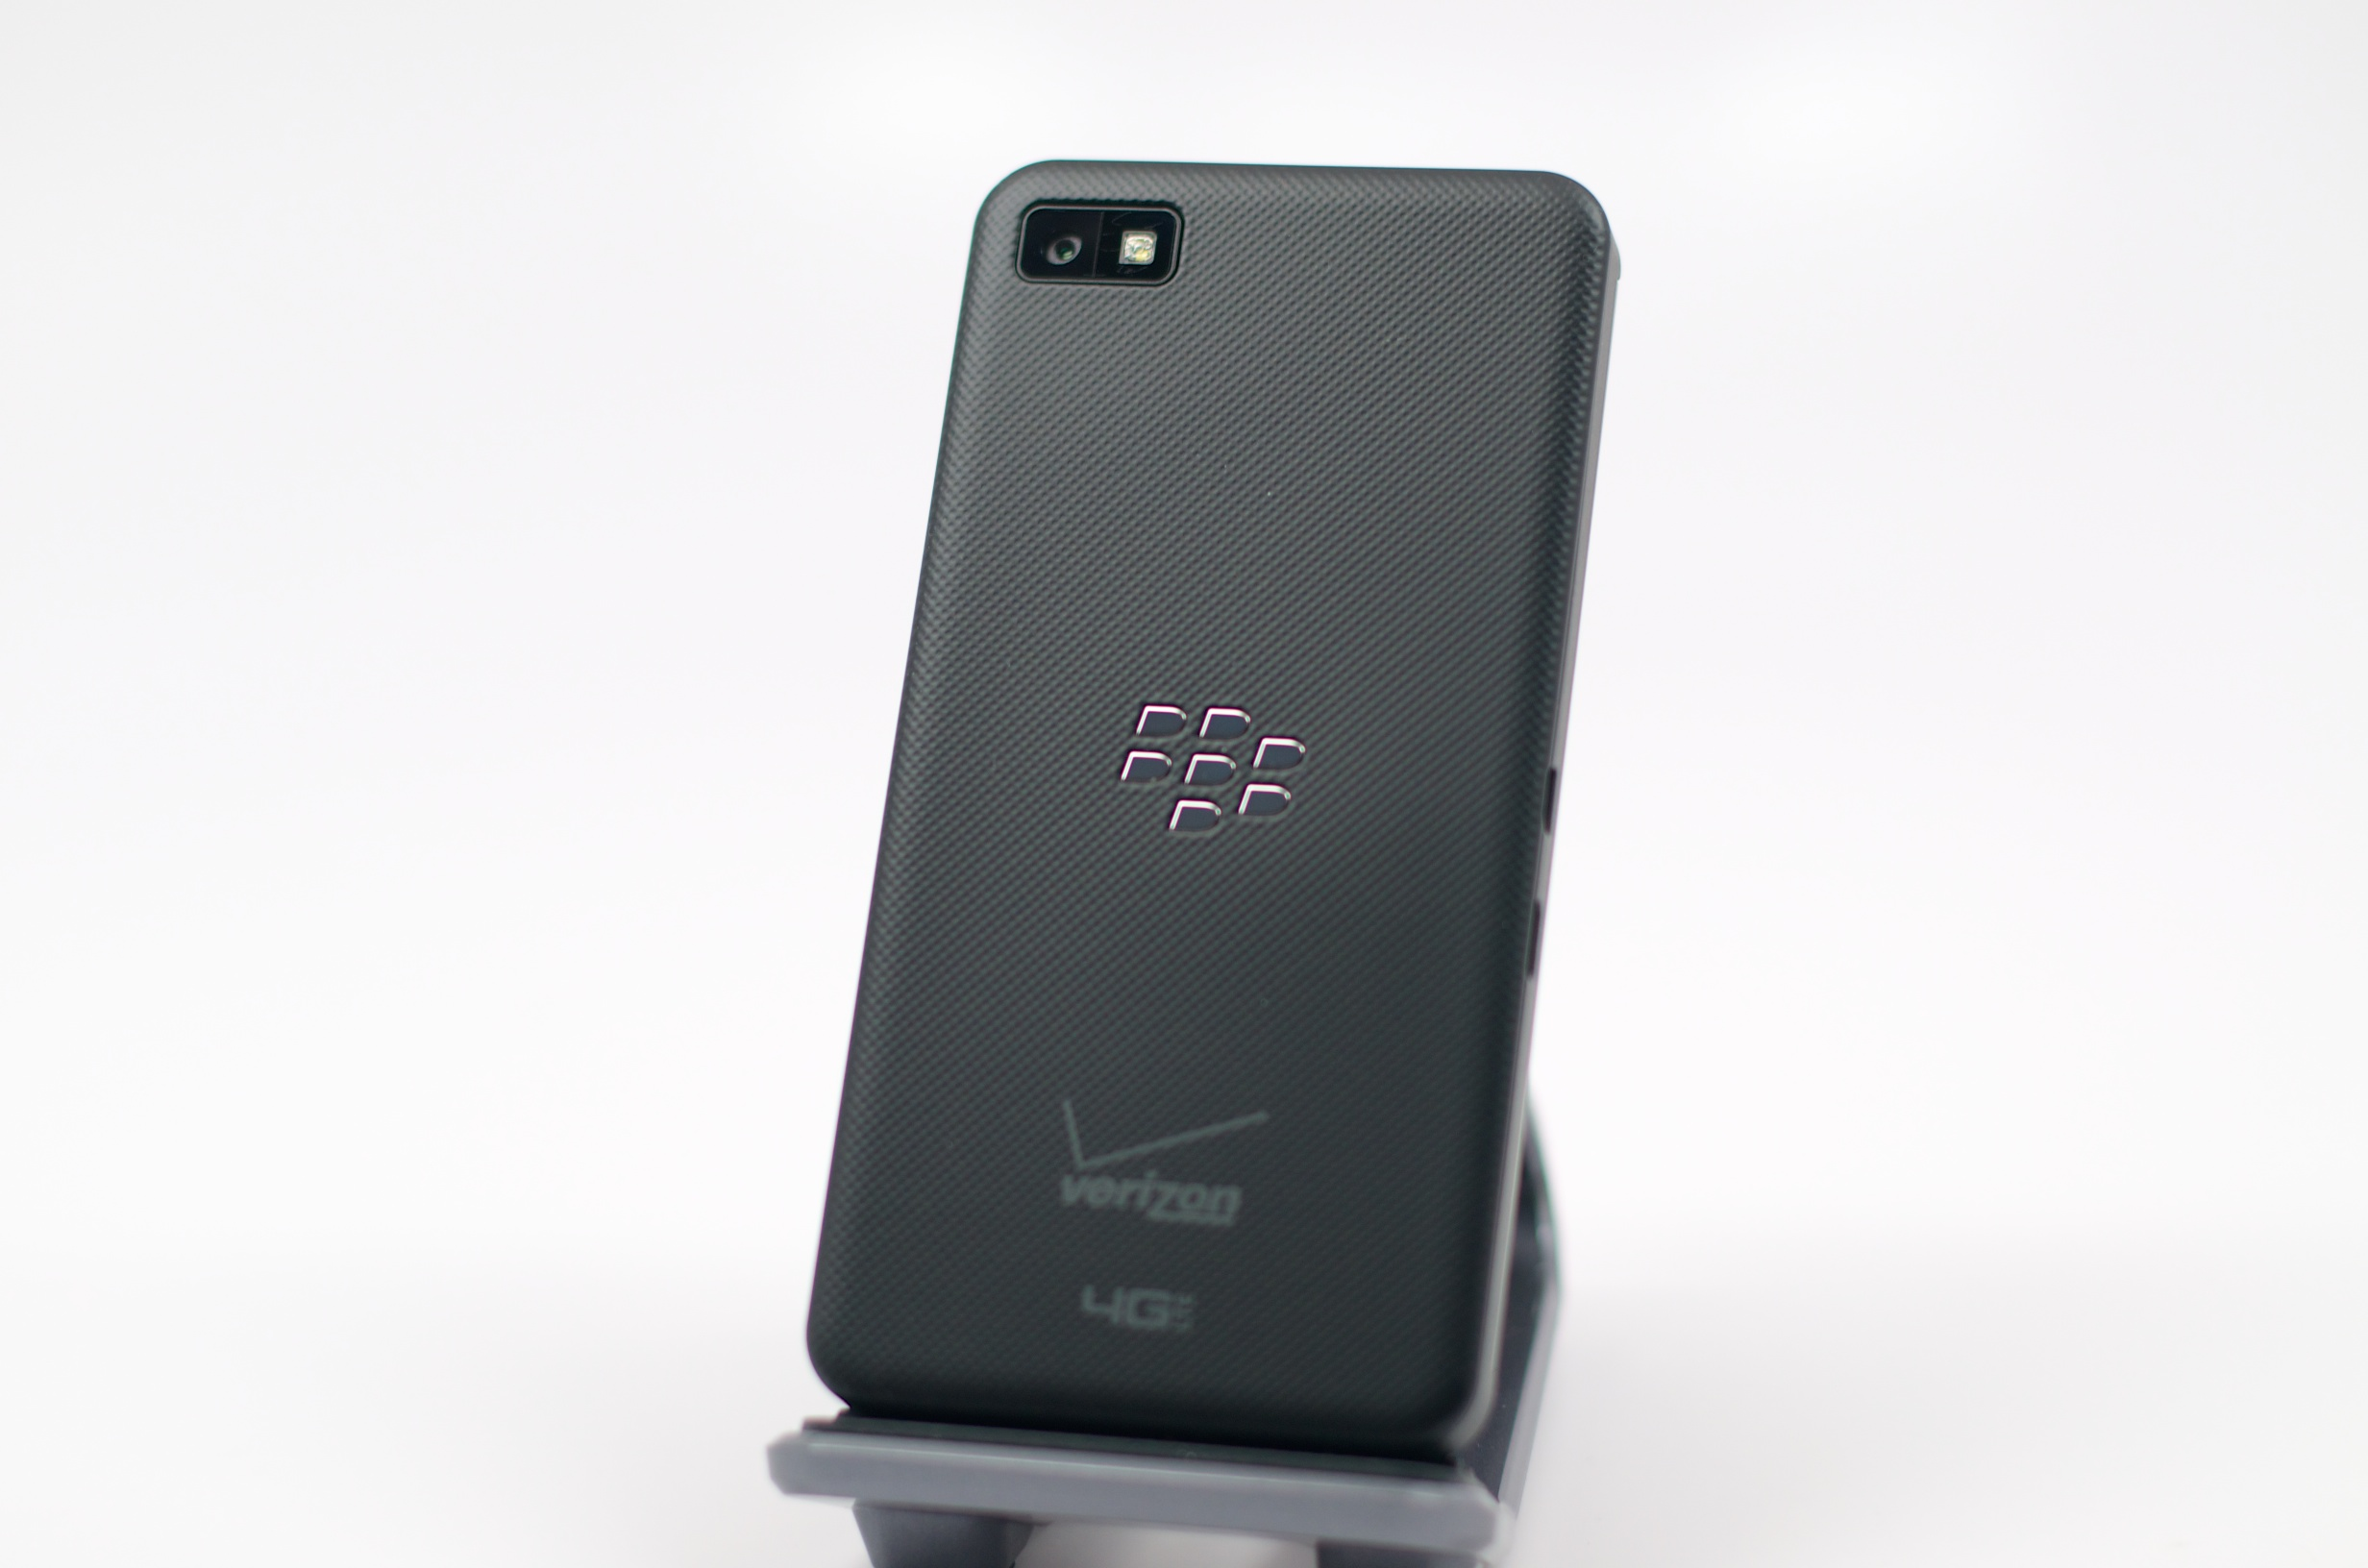 Verizon BlackBerry Z10 Review: From an iPhone Owner